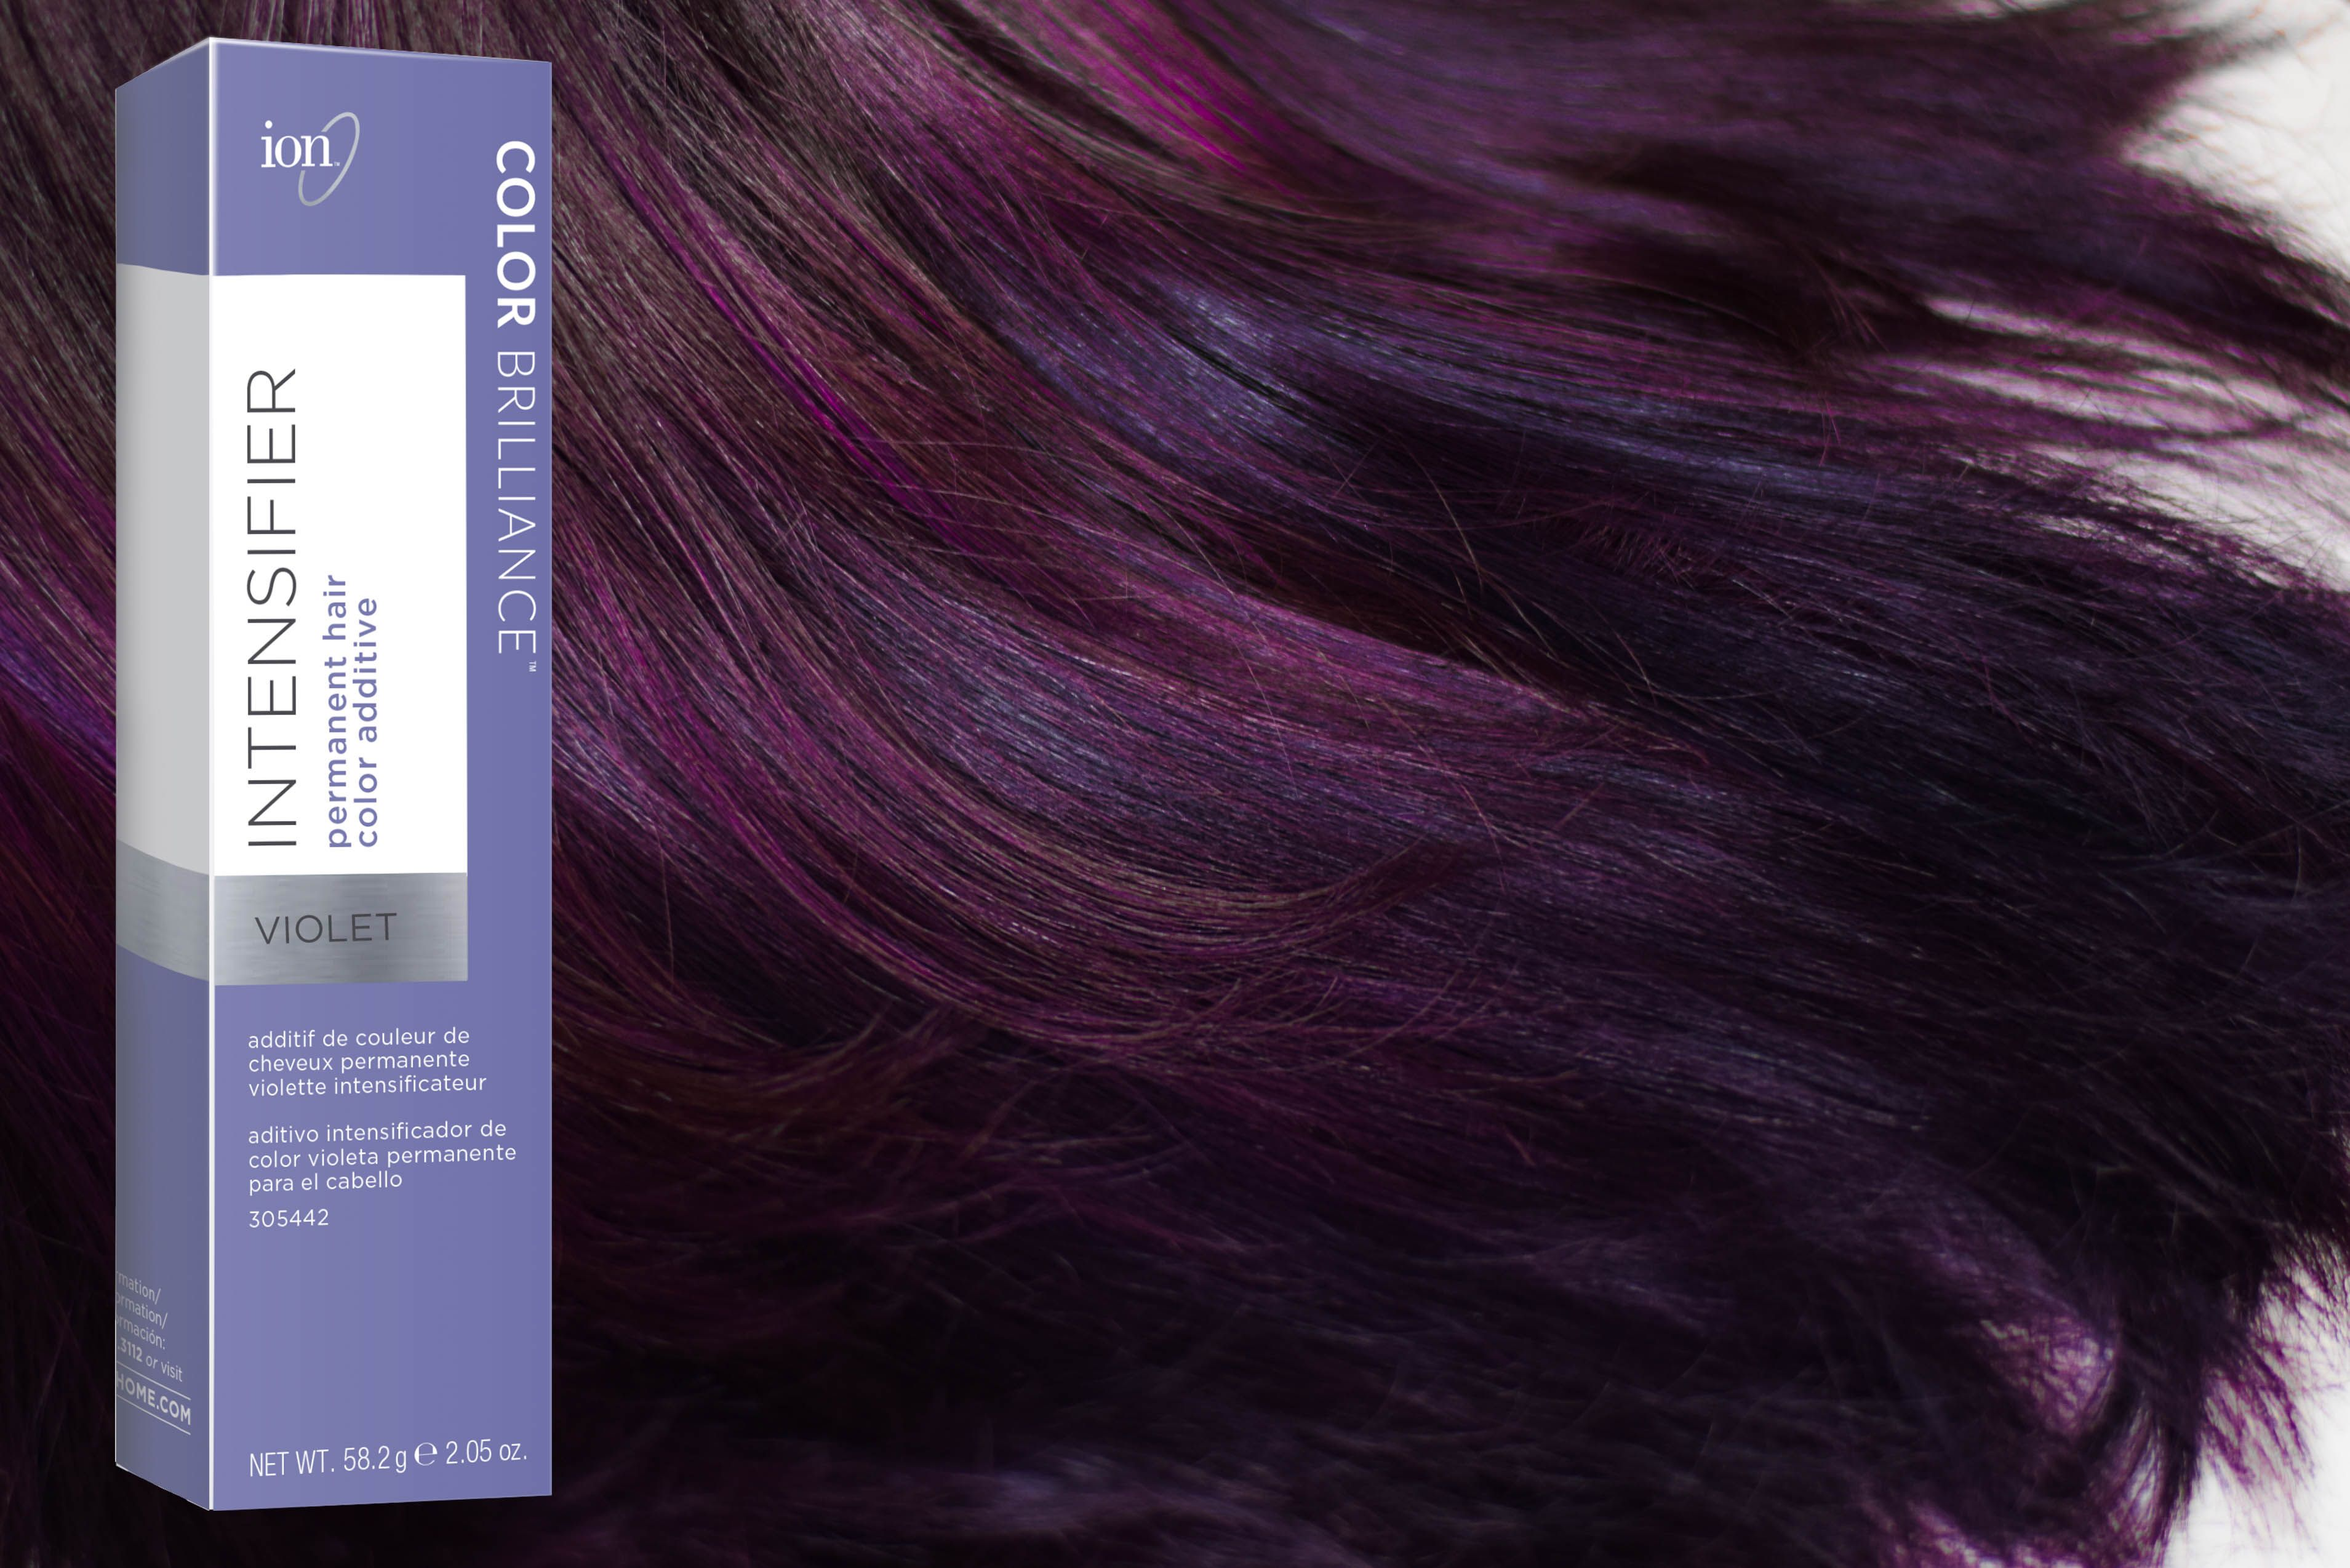 When You Re Looking To Make A Splash With Bright Beautiful Color A Hair Color Intensifier Can Make All The Differe Hair Color Plum Hair Color Ion Hair Colors